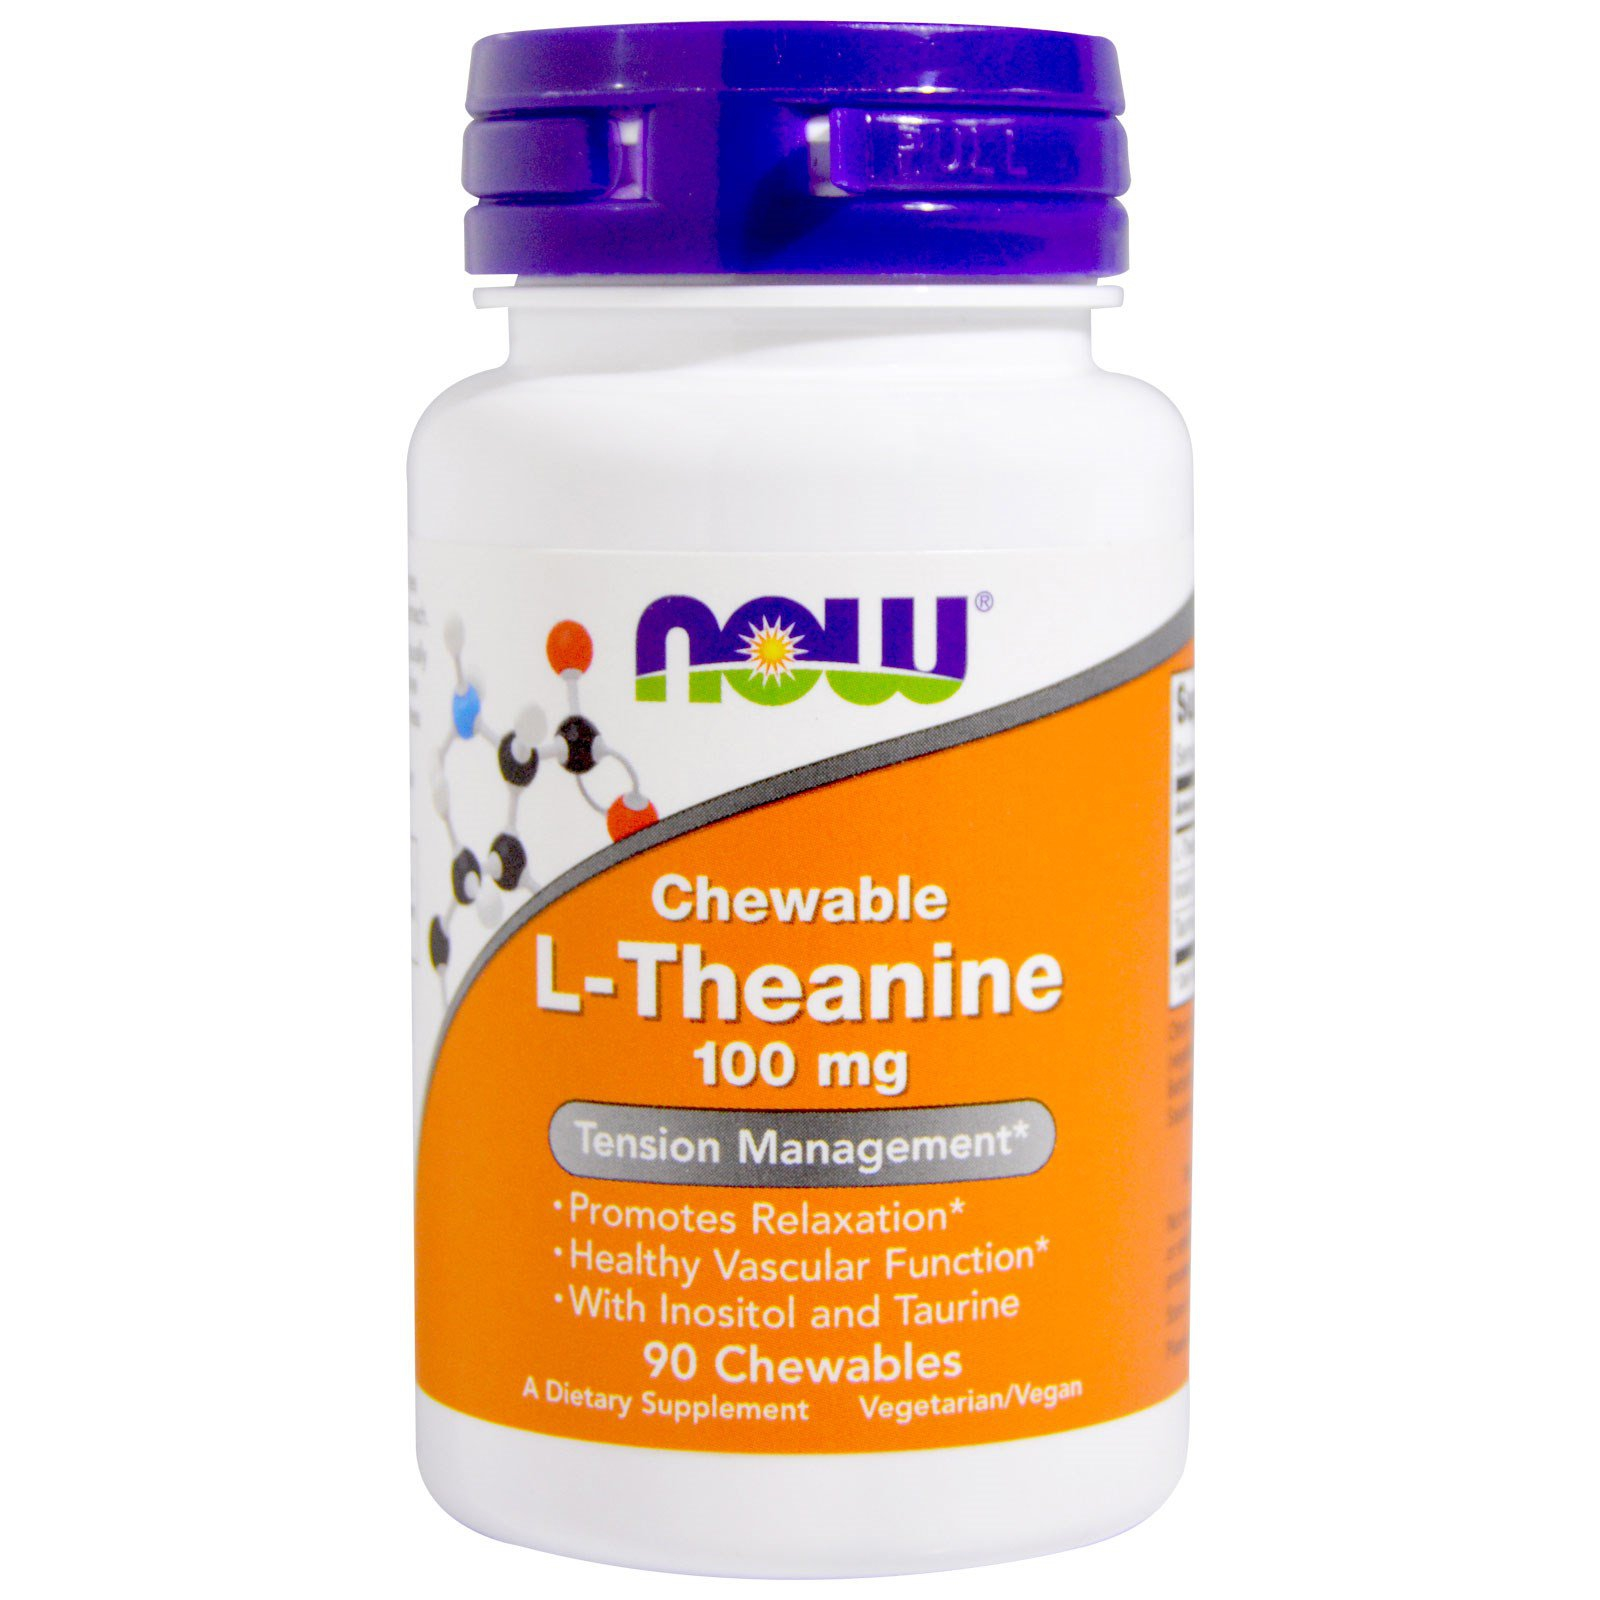 Image of L-Theanine 100 mg (90 chewable tablets) - Now Foods 0733739001443